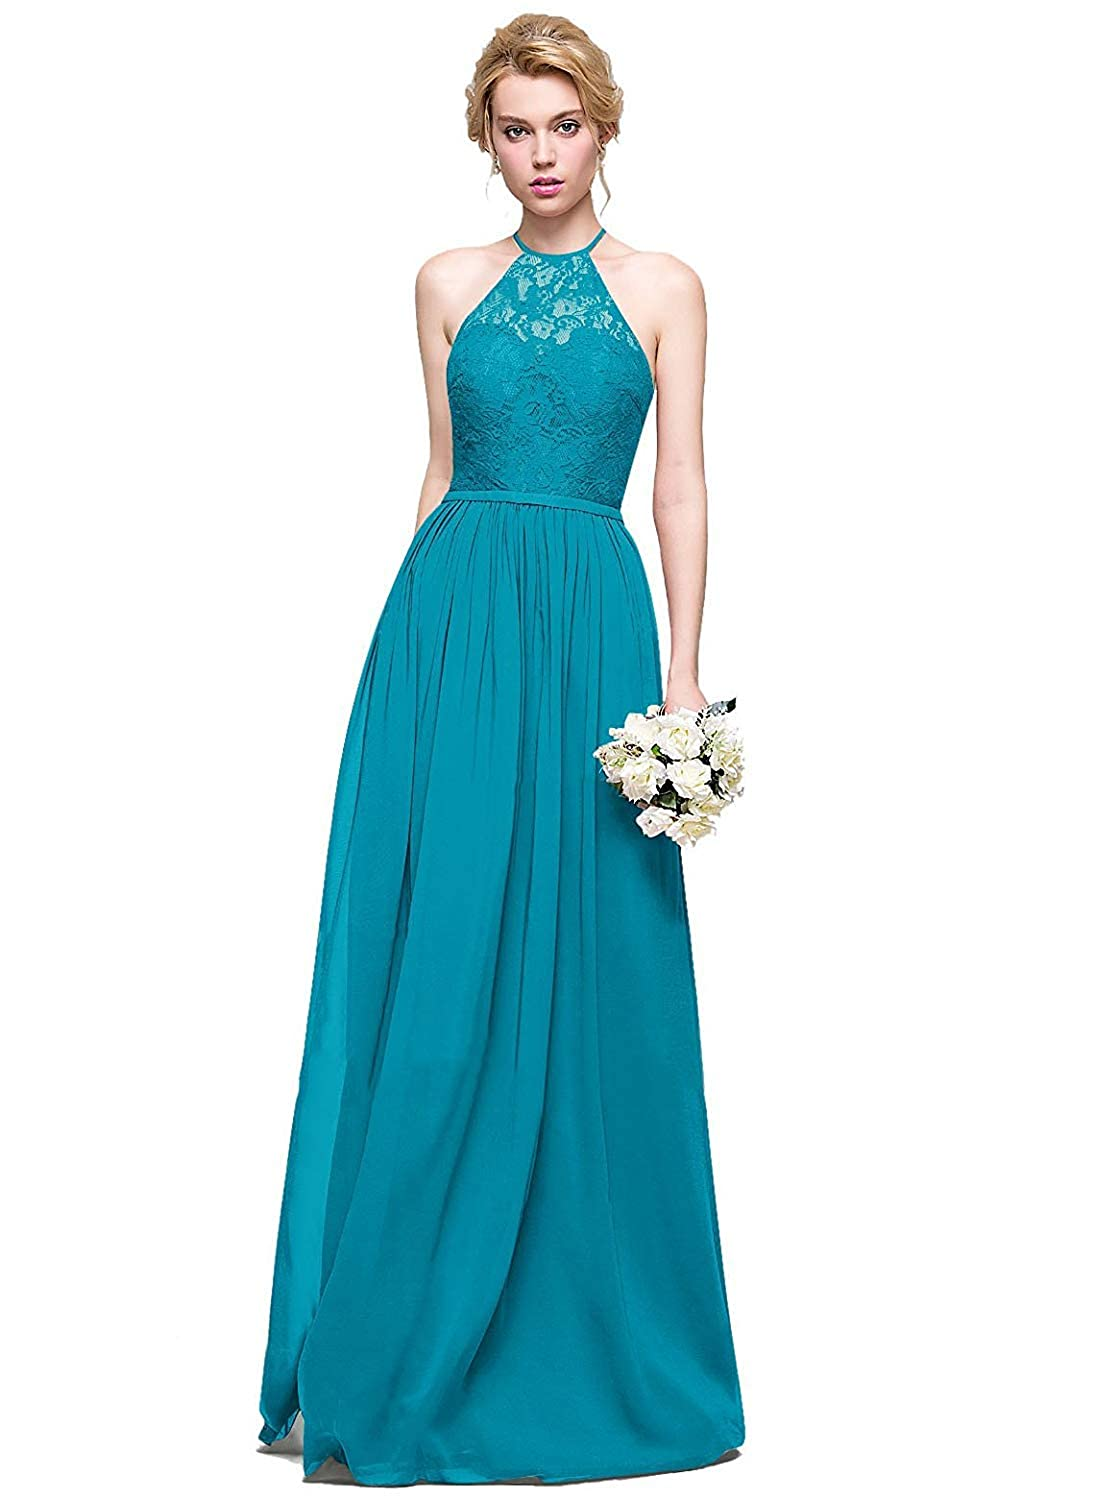 Aqua Halter Lace Sweetheart Neck Bridesmaid Dresses Long Prom Evening Gown